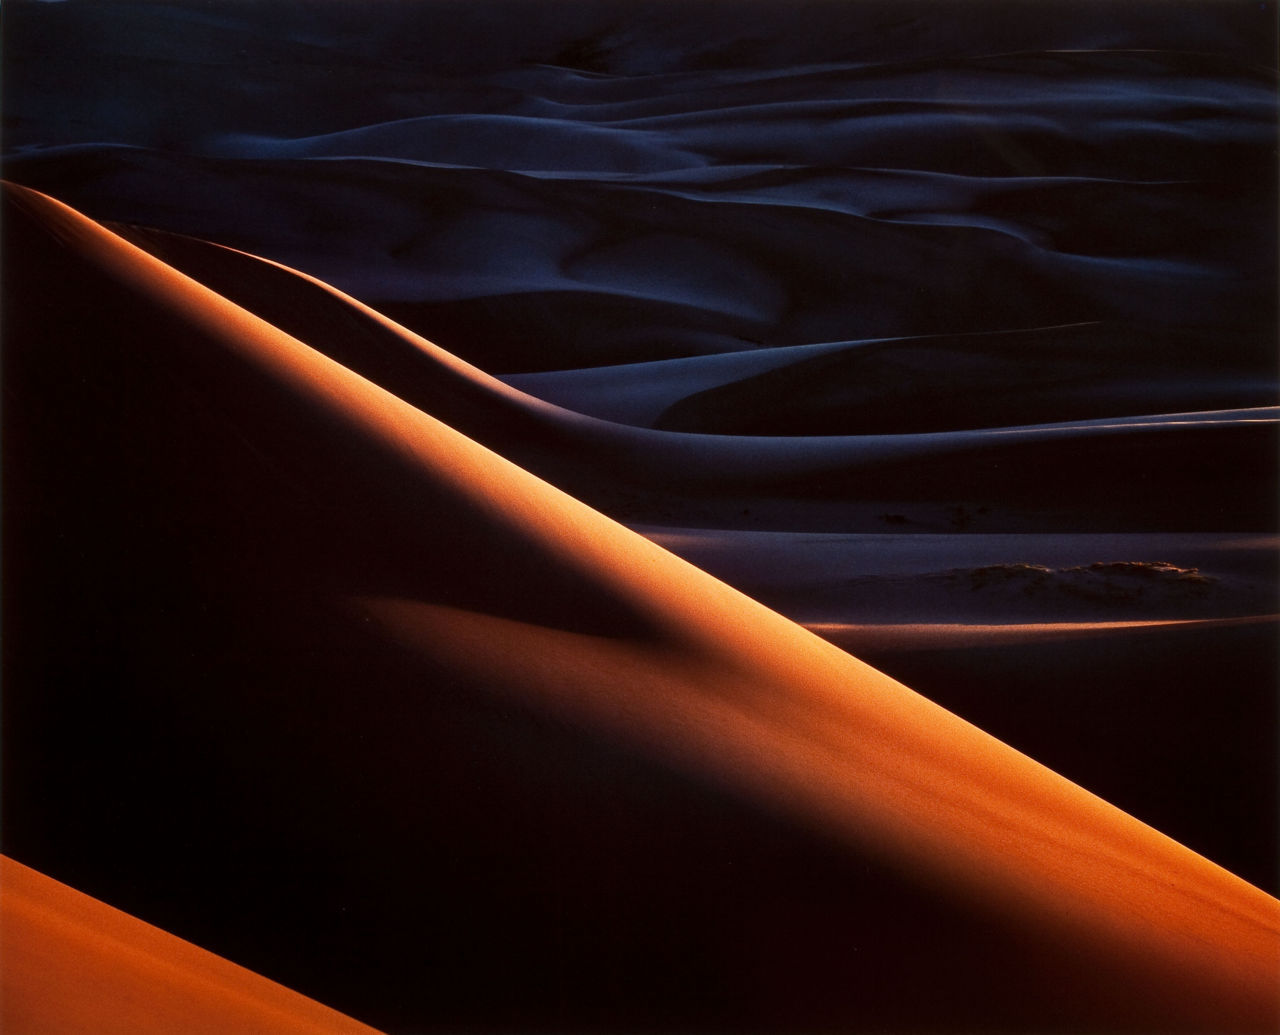 Christopher Burkett, Sunset, Great Sand Dunes, Colorado, 1980. Thank you, firsttimeuser.